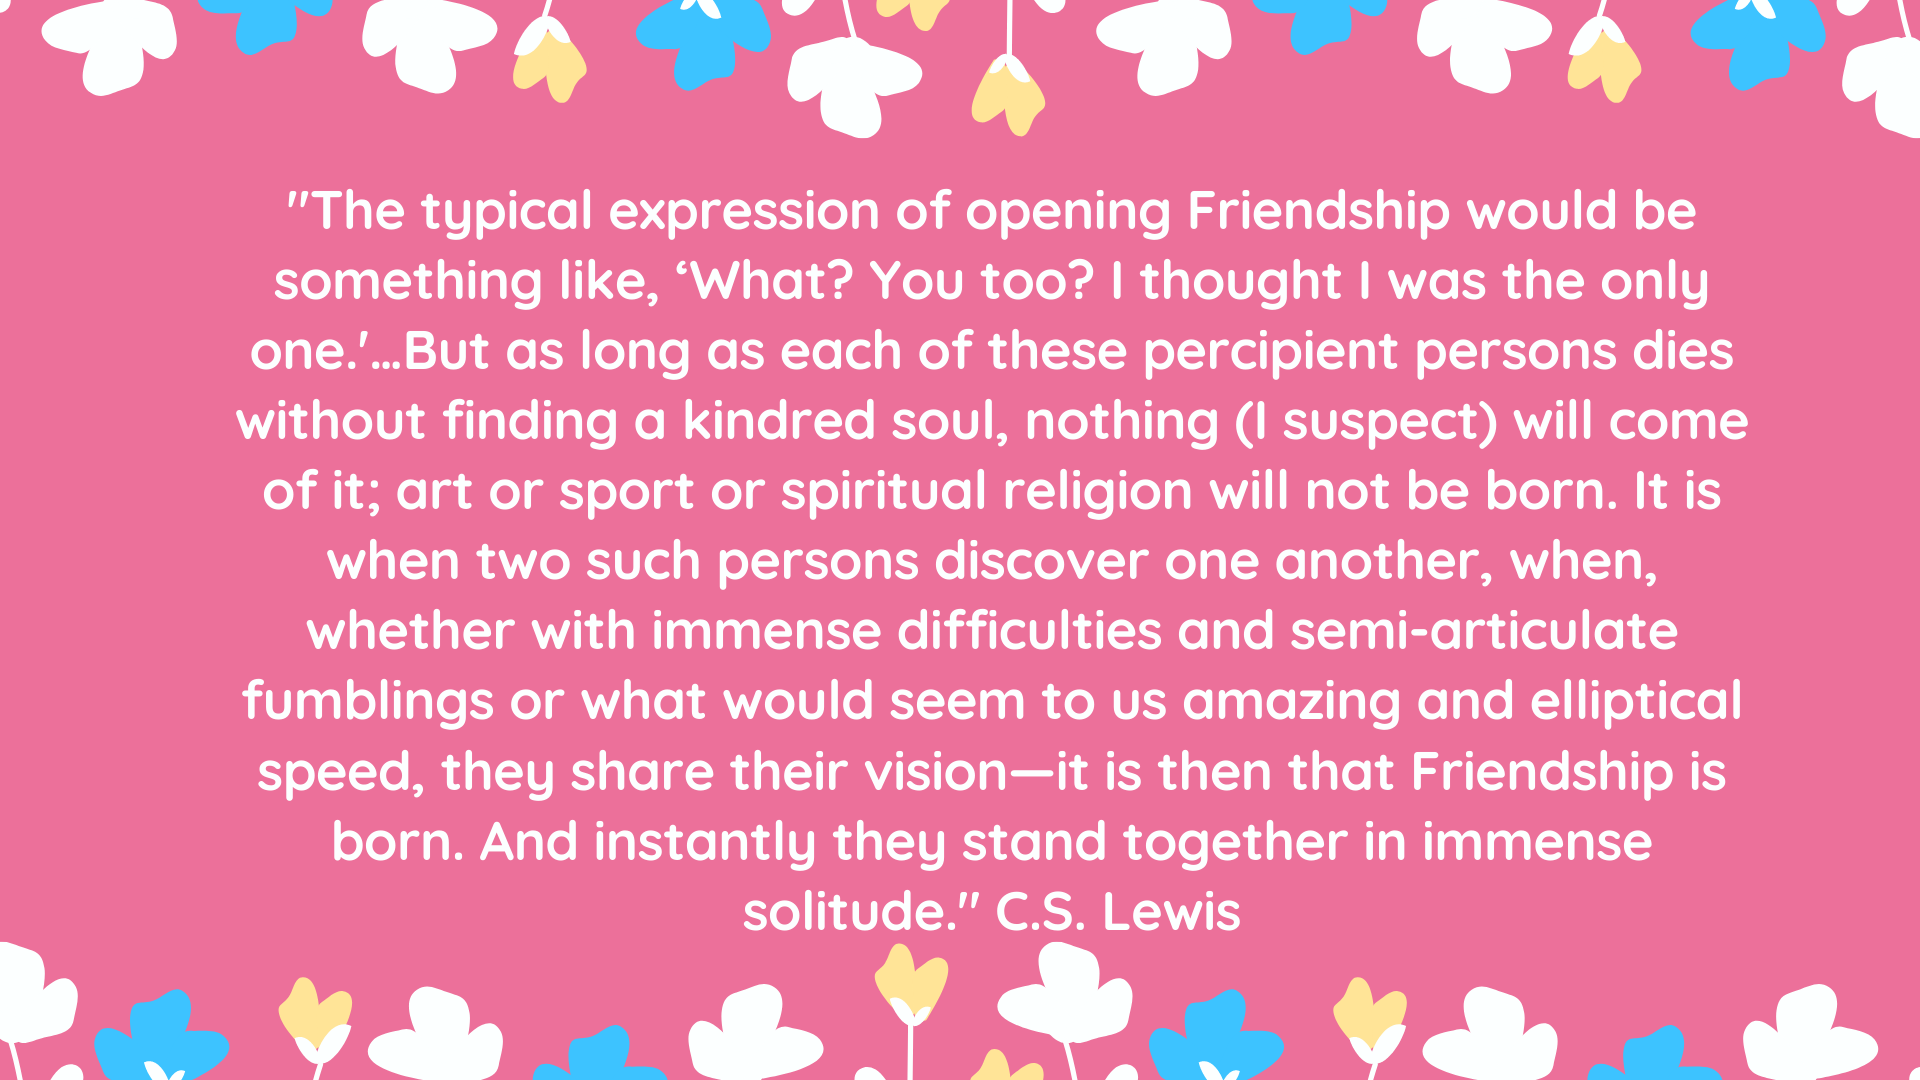 """The typical expression of opening Friendship would be something like, 'What? You too? I thought I was the only one.'…But as long as each of these percipient persons dies without finding a kindred soul, nothing (I suspect) will come of it; art or sport or spiritual religion will not be born. It is when two such persons discover one another, when, whether with immense difficulties and semi-articulate fumblings or what would seem to us amazing and elliptical speed, they share their vision—it is then that Friendship is born. And instantly they stand together in immense solitude."" C.S. Lewis"